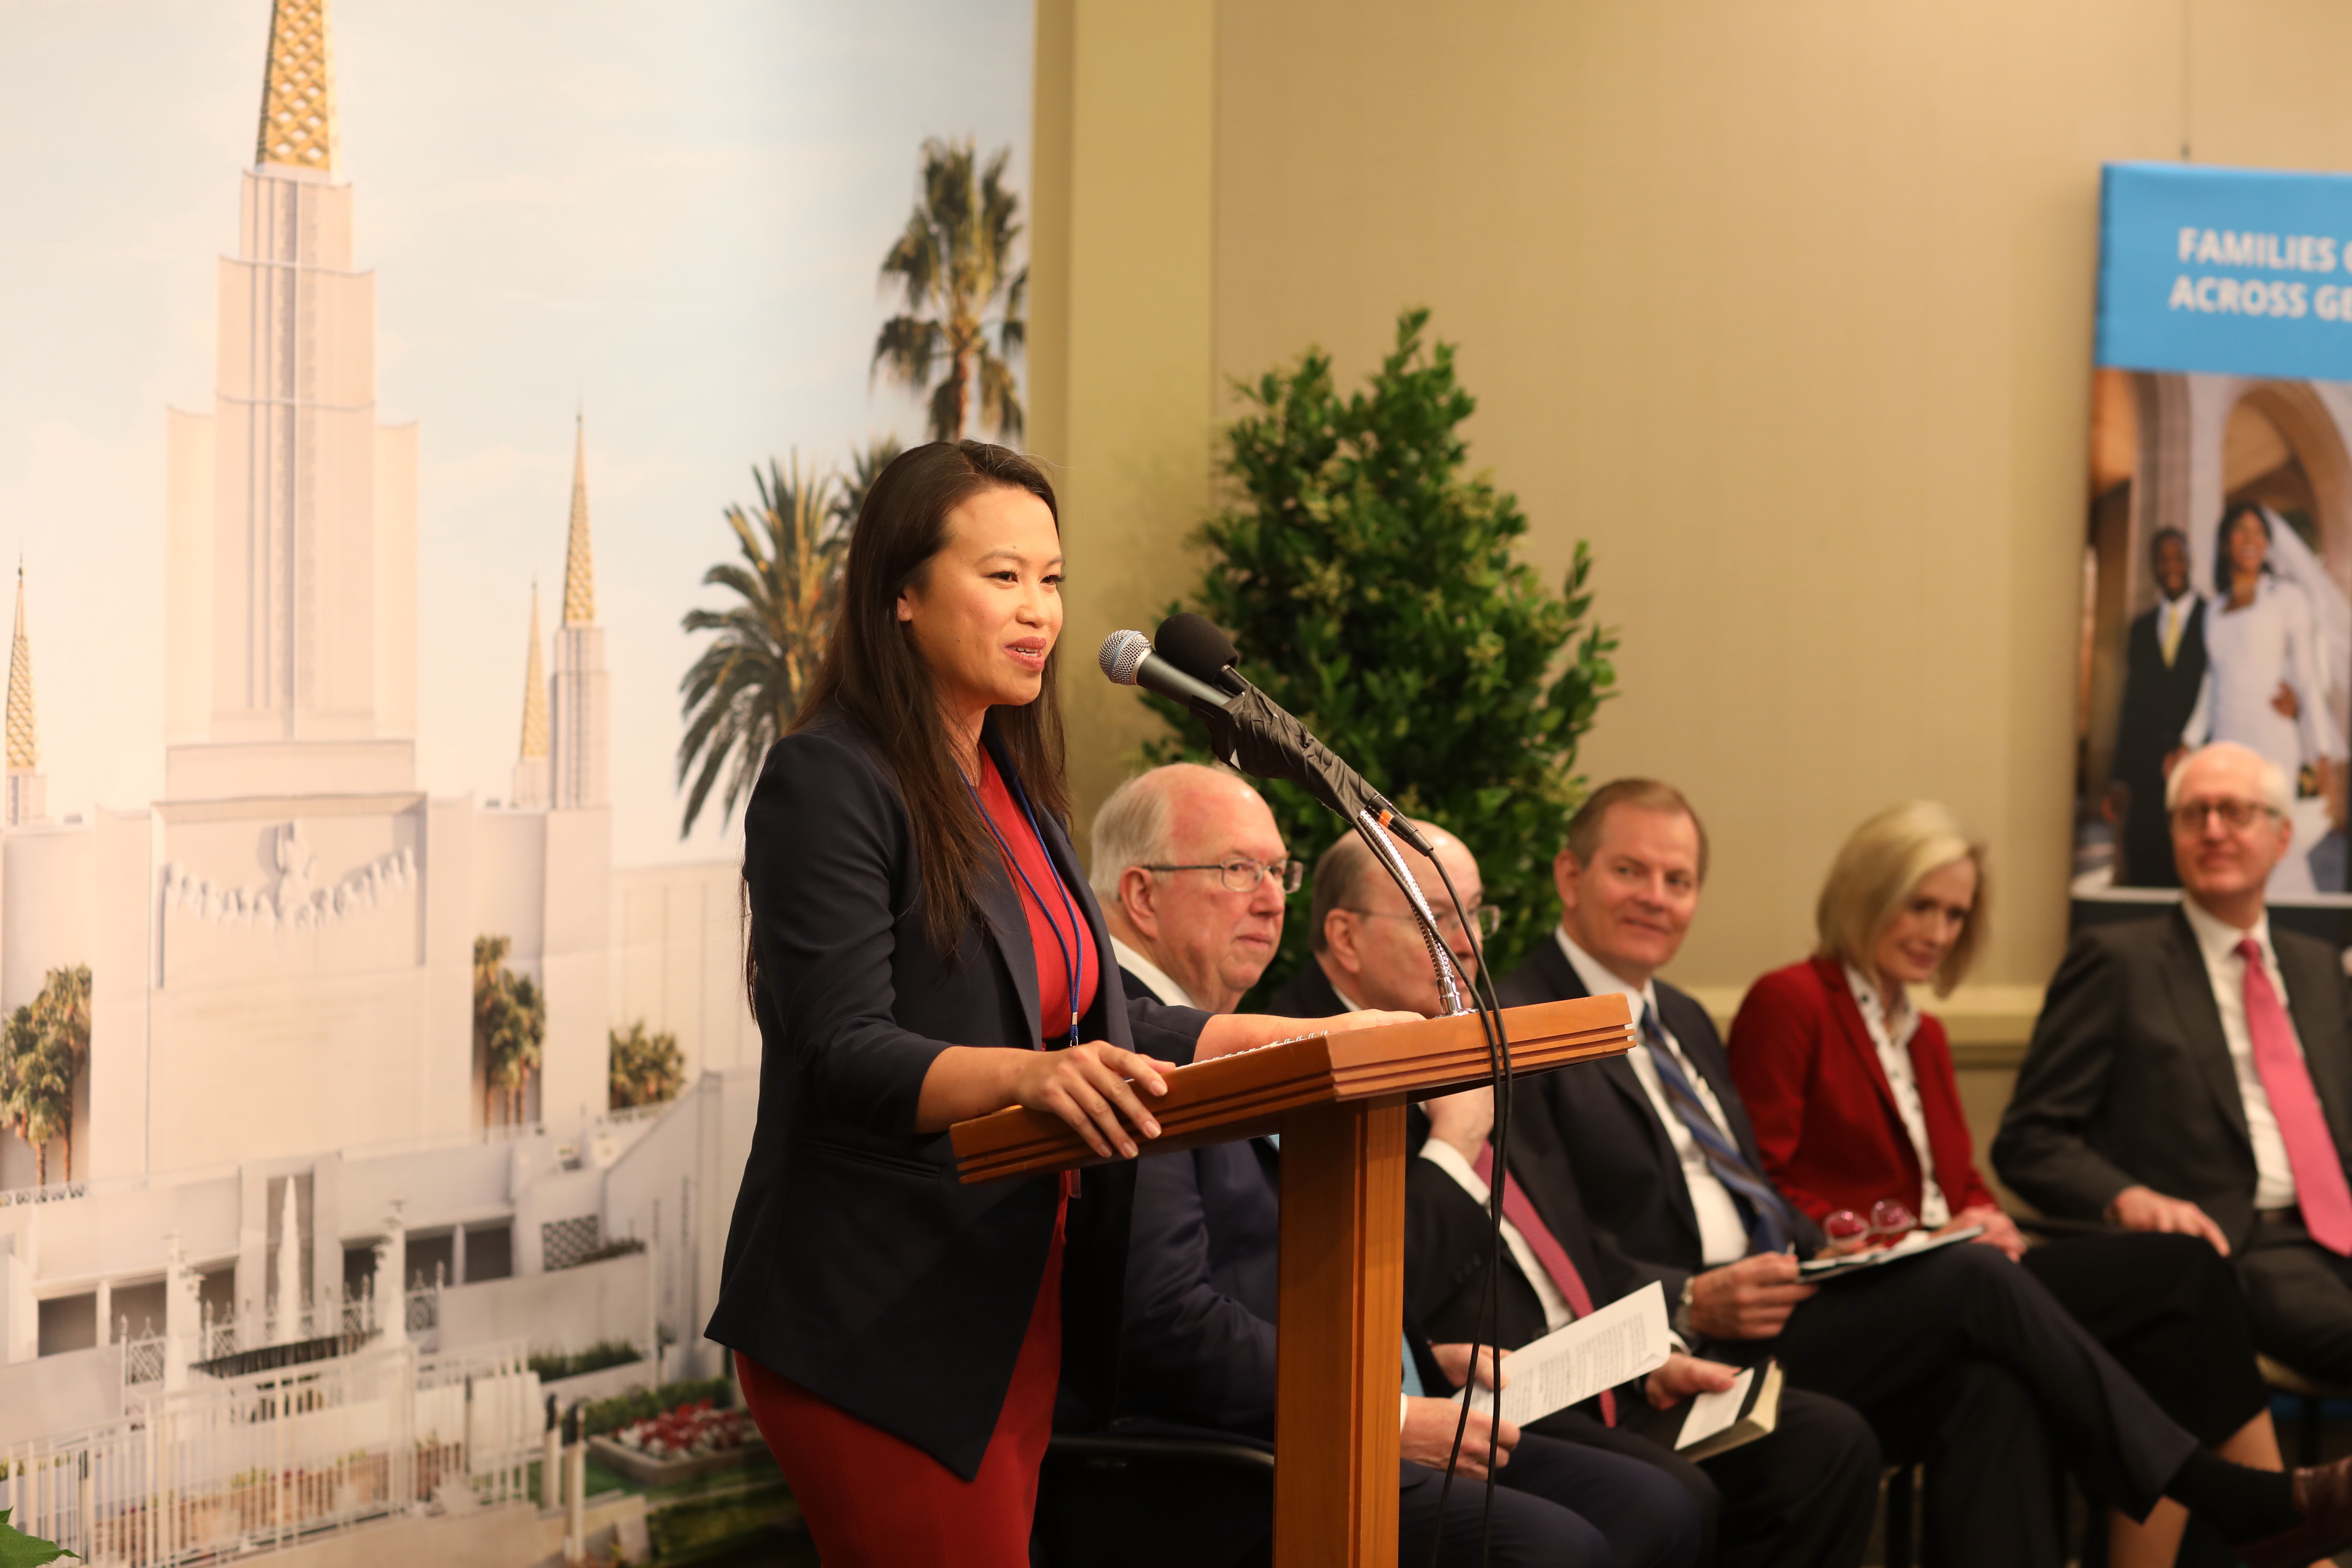 Sheng Thao, District 4 council member for the City of Oakland, provided remarks during the briefing on the Oakland California Temple May 6, 2019.